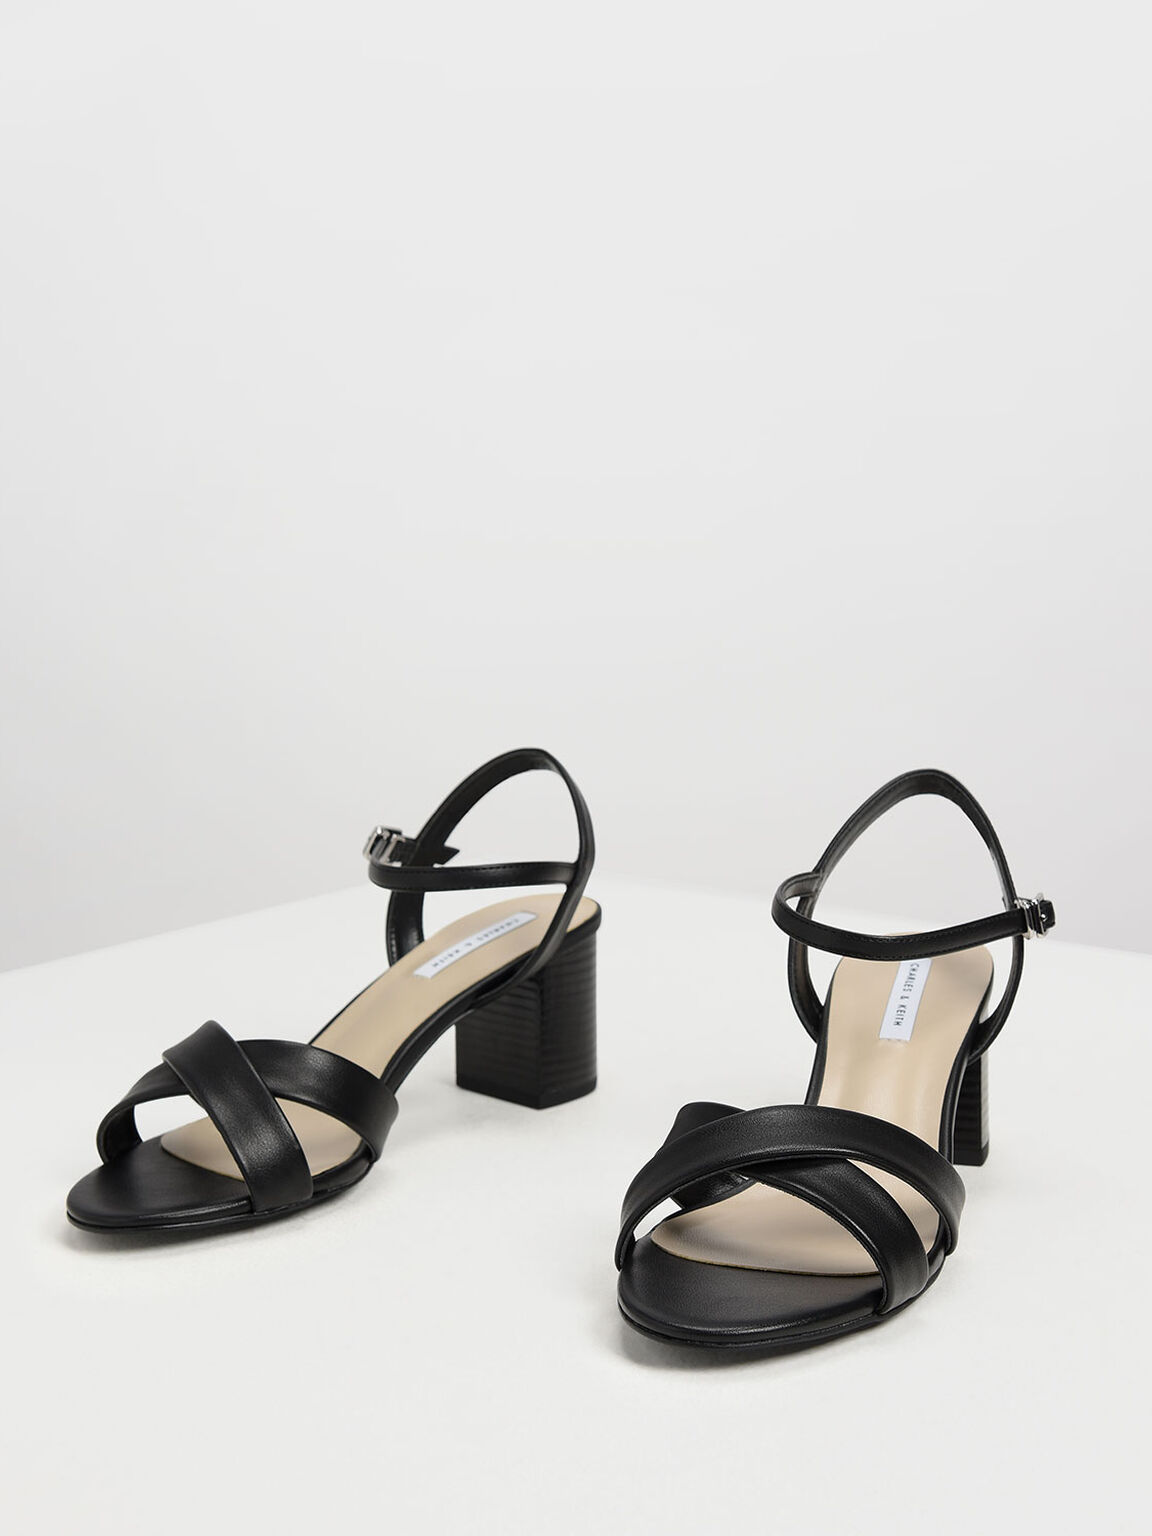 Criss-Cross Block Heel Sandals, Black, hi-res